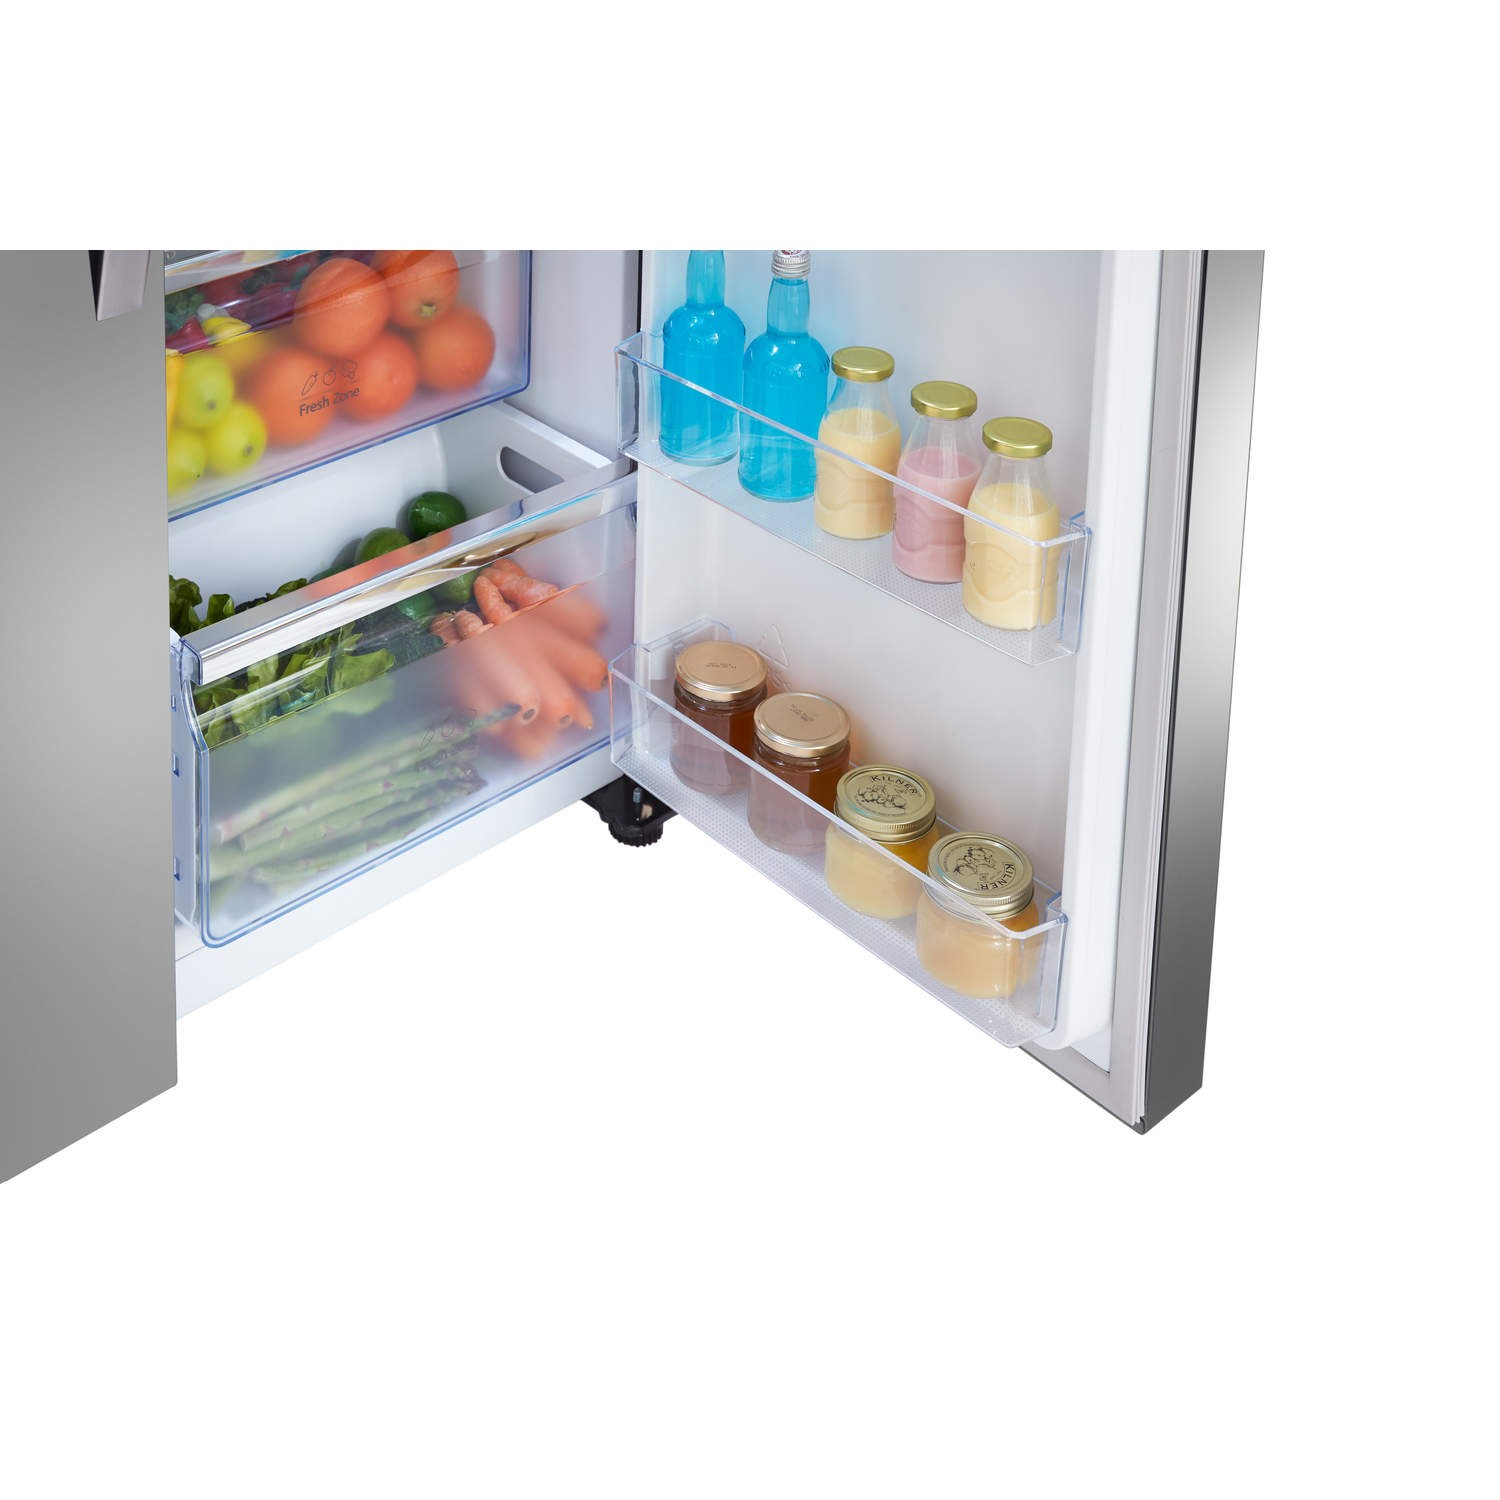 Hisense RS696N4II1 Side By Side American Fridge Freezer With Ice And Water  Dispenser Stainless Steel Look